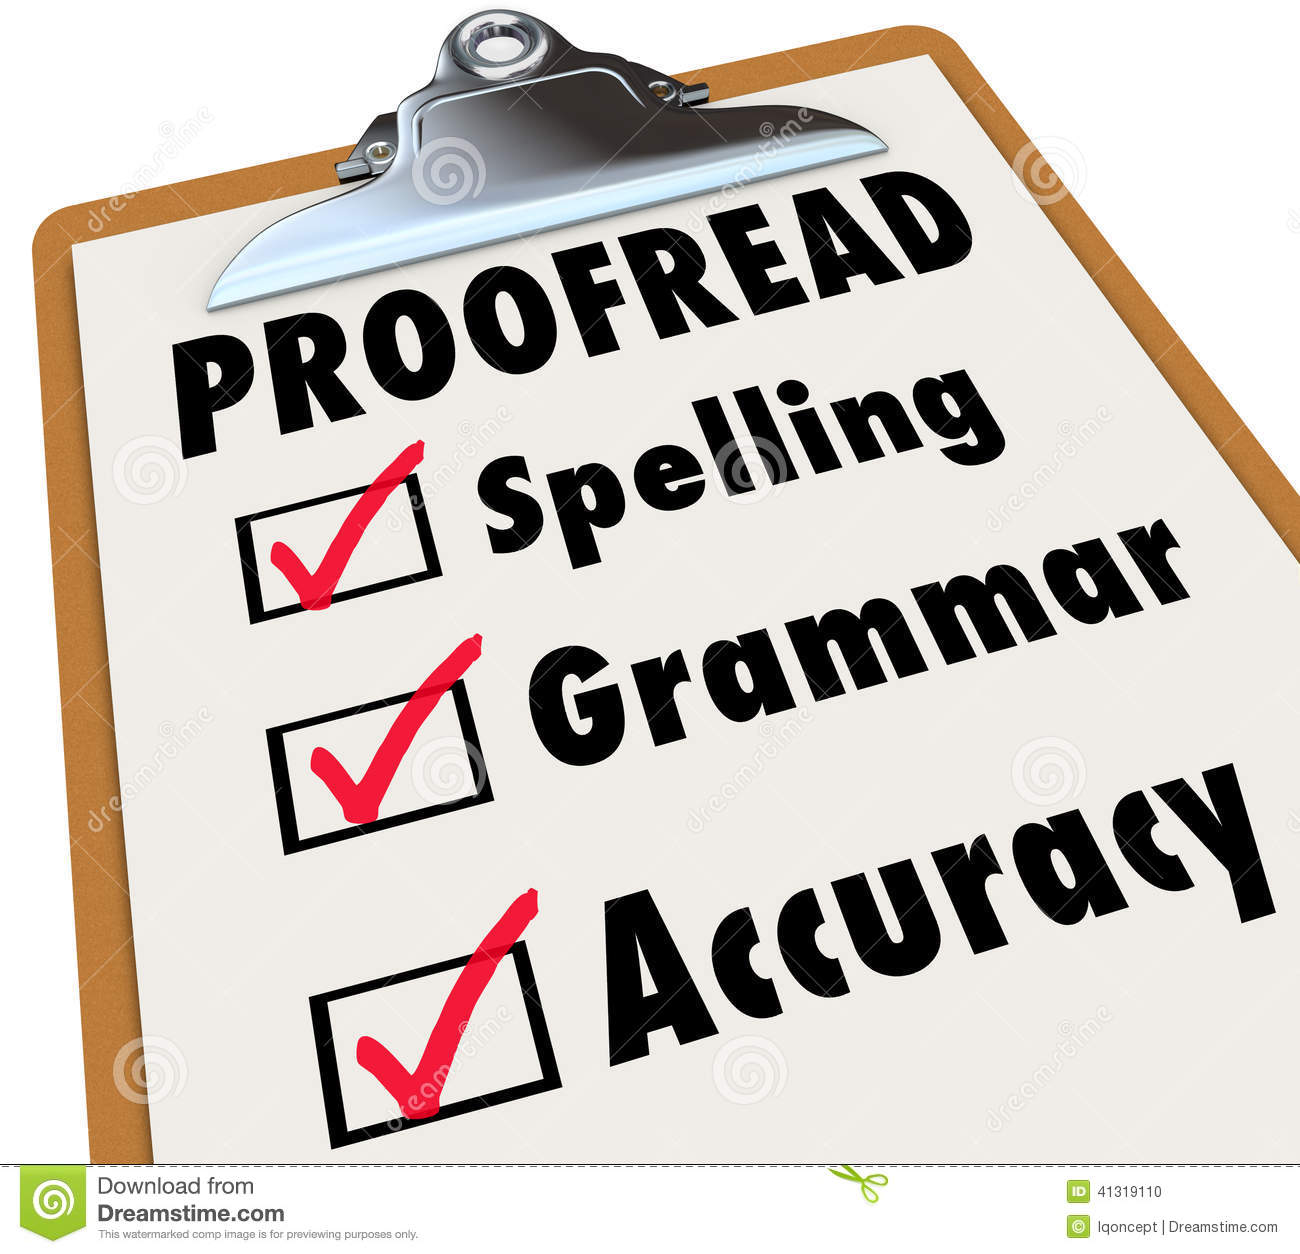 need help correcting essay proof clipboard checklist spelling grammar accuracy stock proof clipboard checklist spelling grammar accuracy